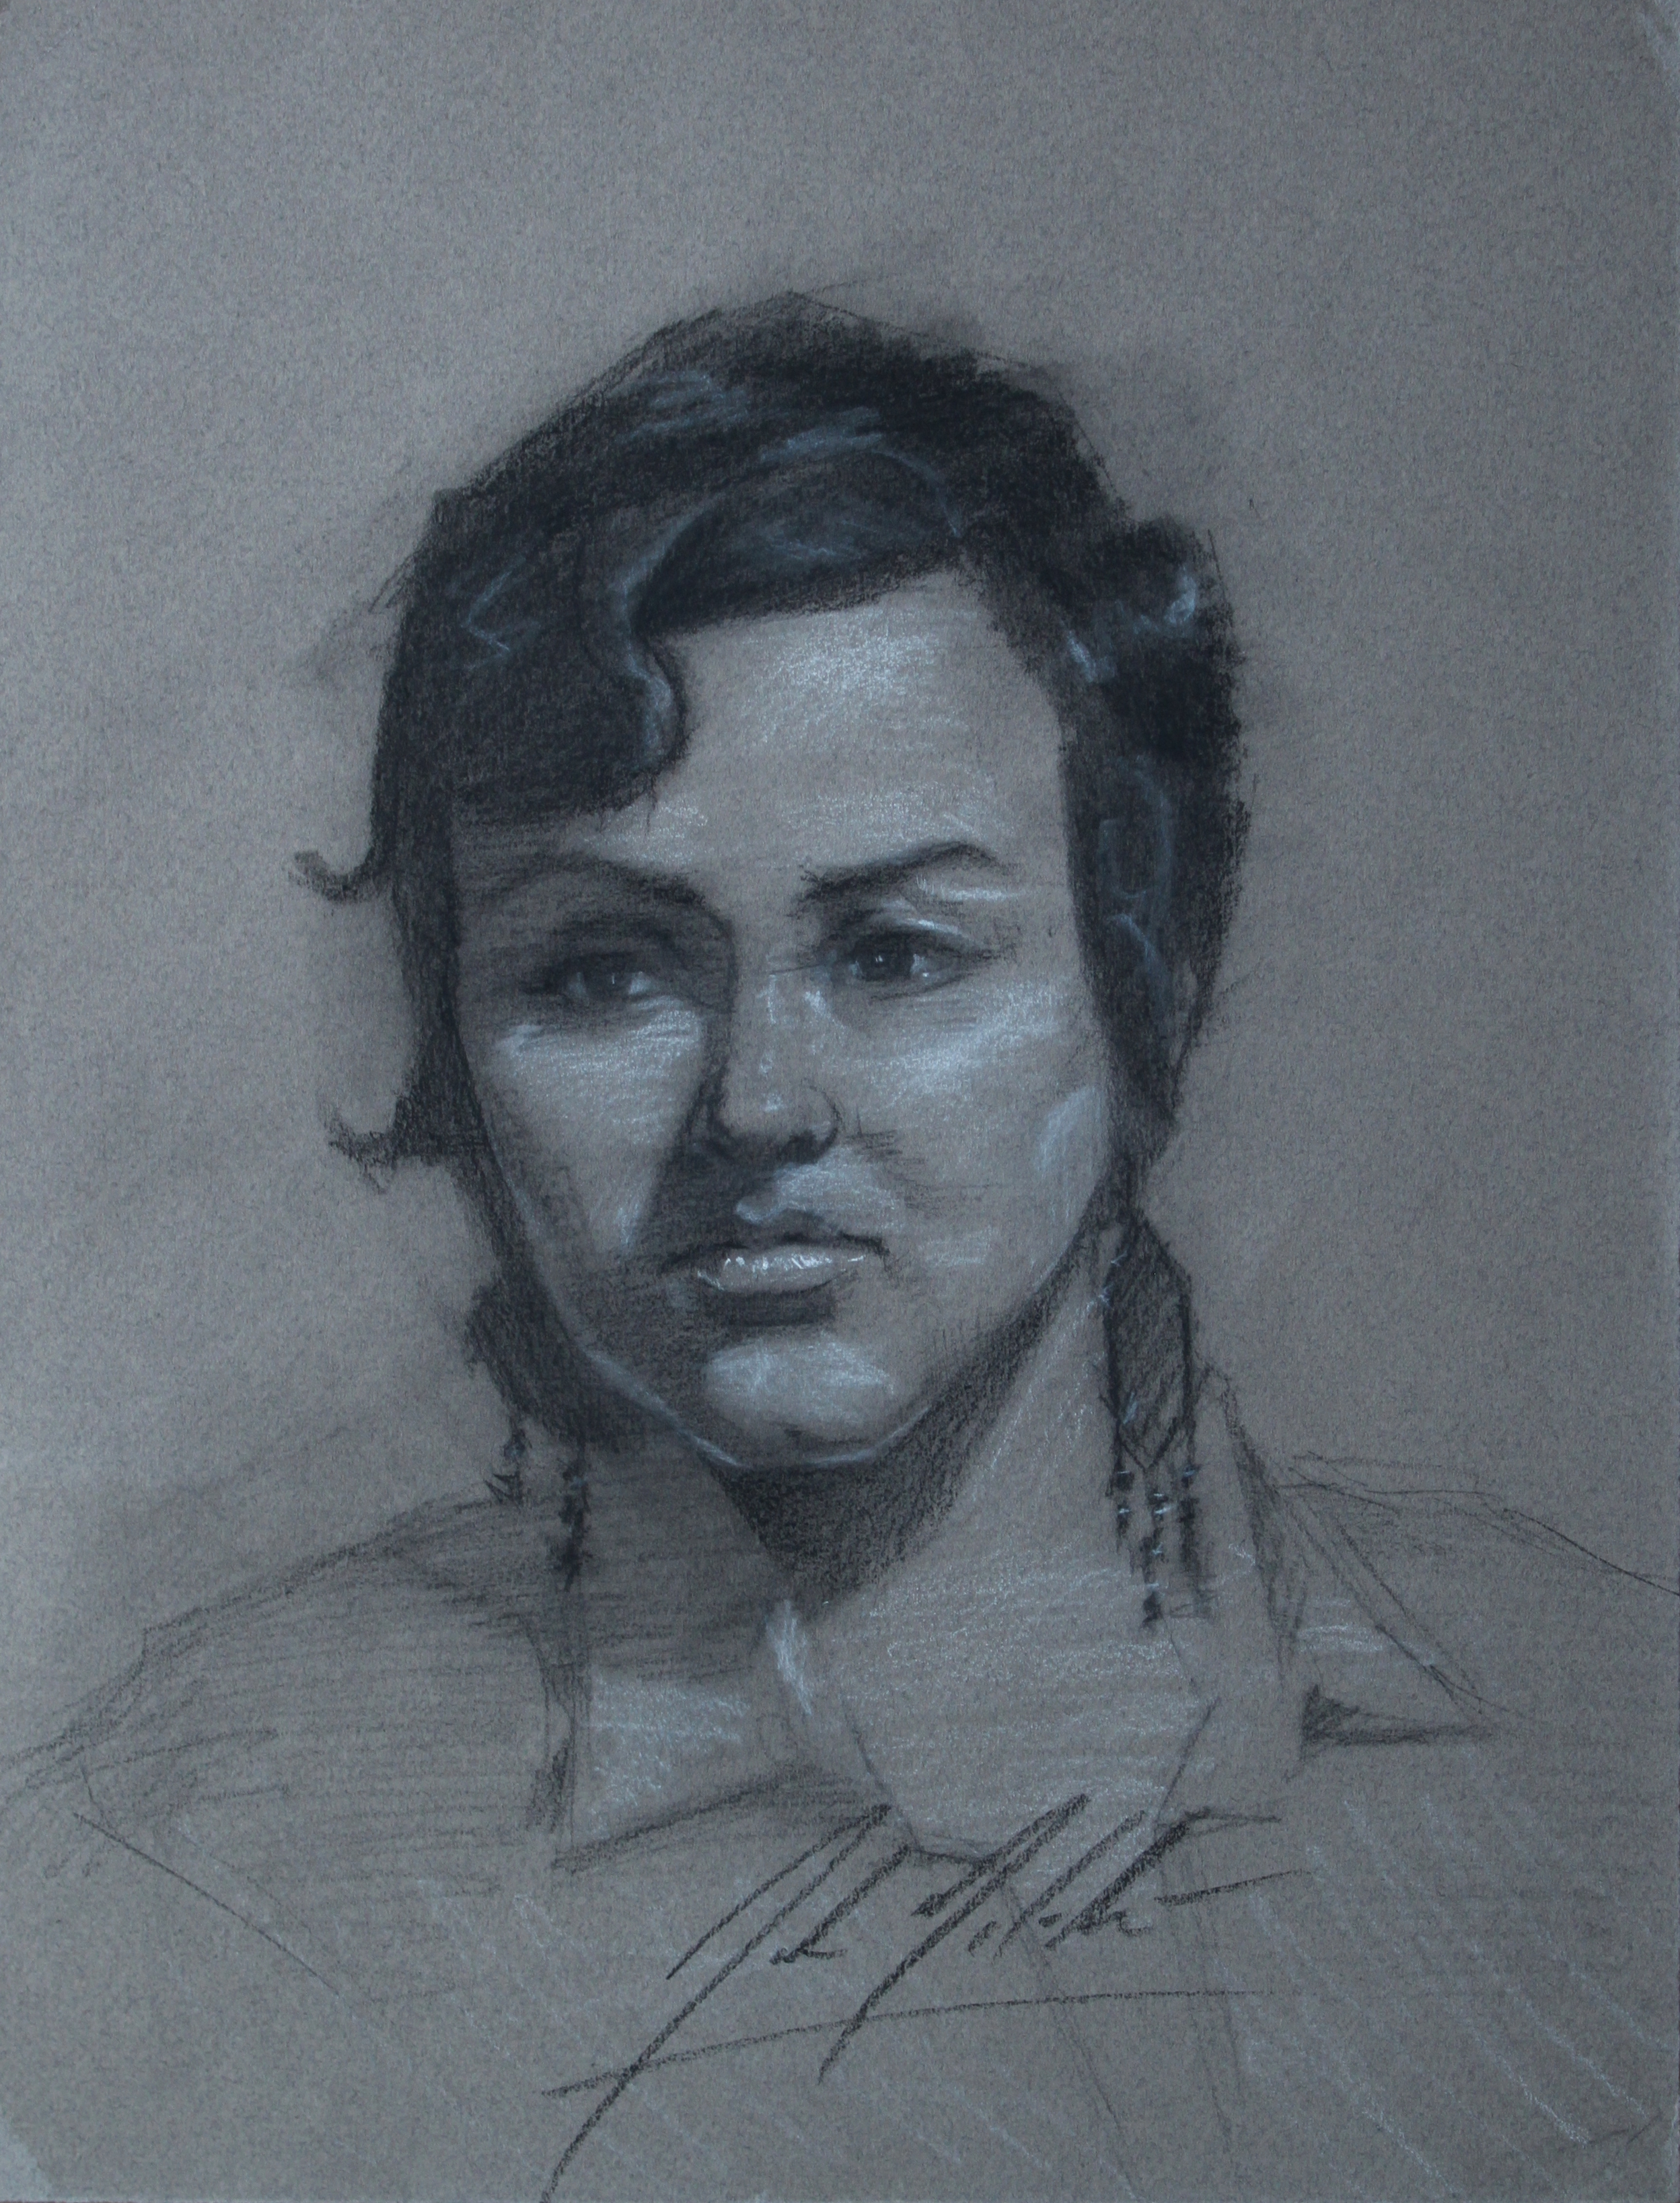 Bandit, 2014, charcoal on paper, 12 x 9 inches